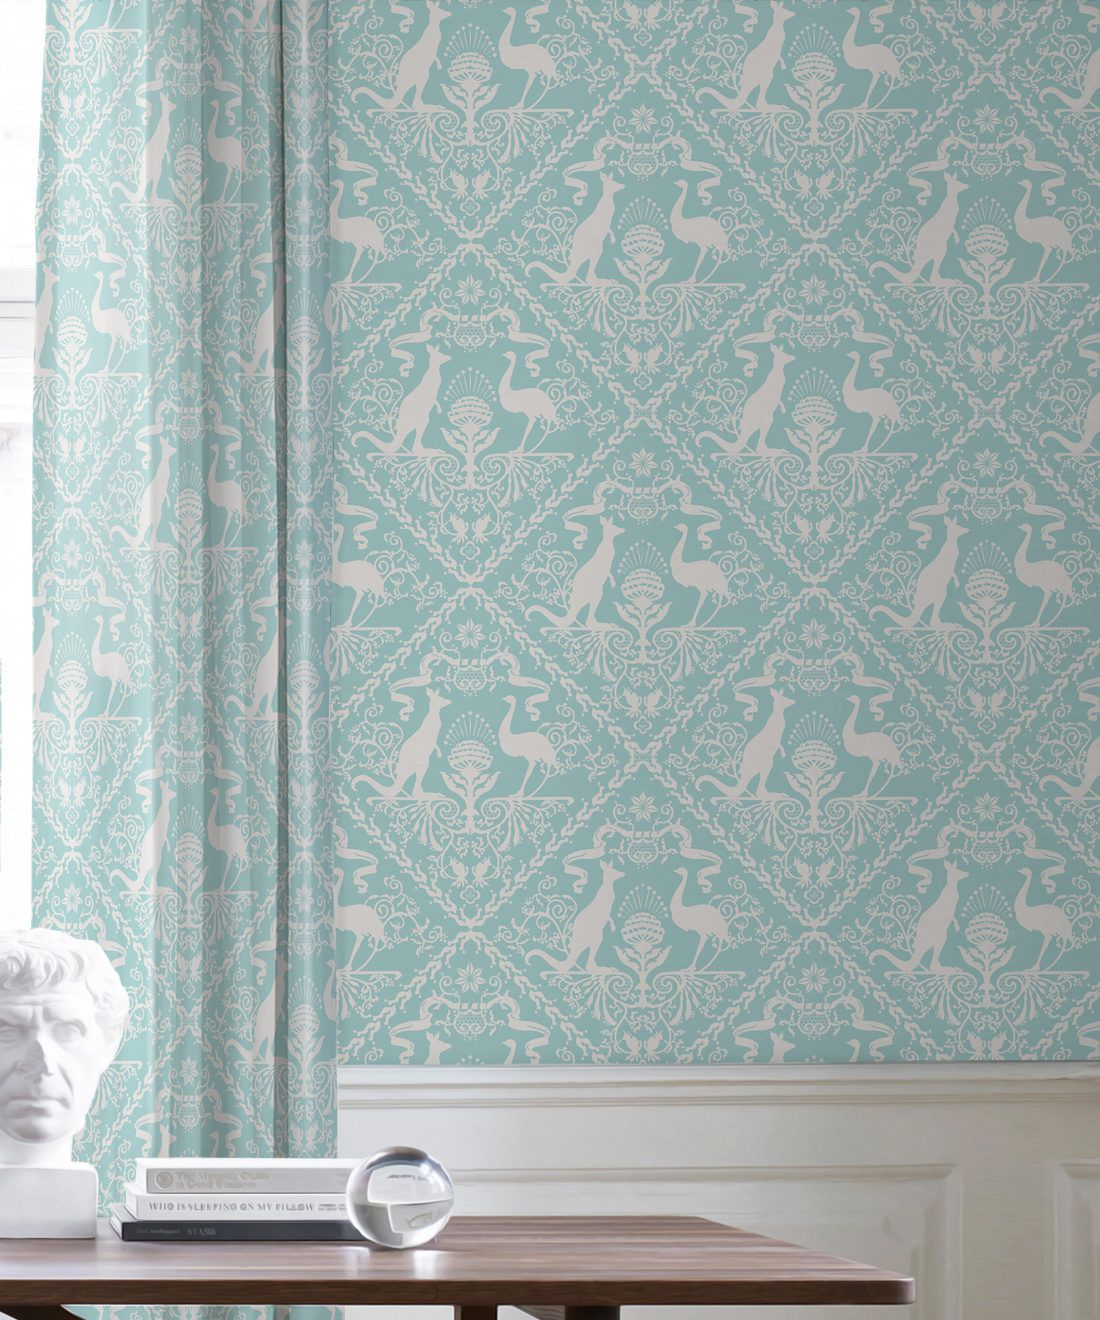 In Australia We Trust Cockatoo• Australian Wallpaper • Australian Coat of Arms • Milton & King USA • Aqua Wallpaper Insitu